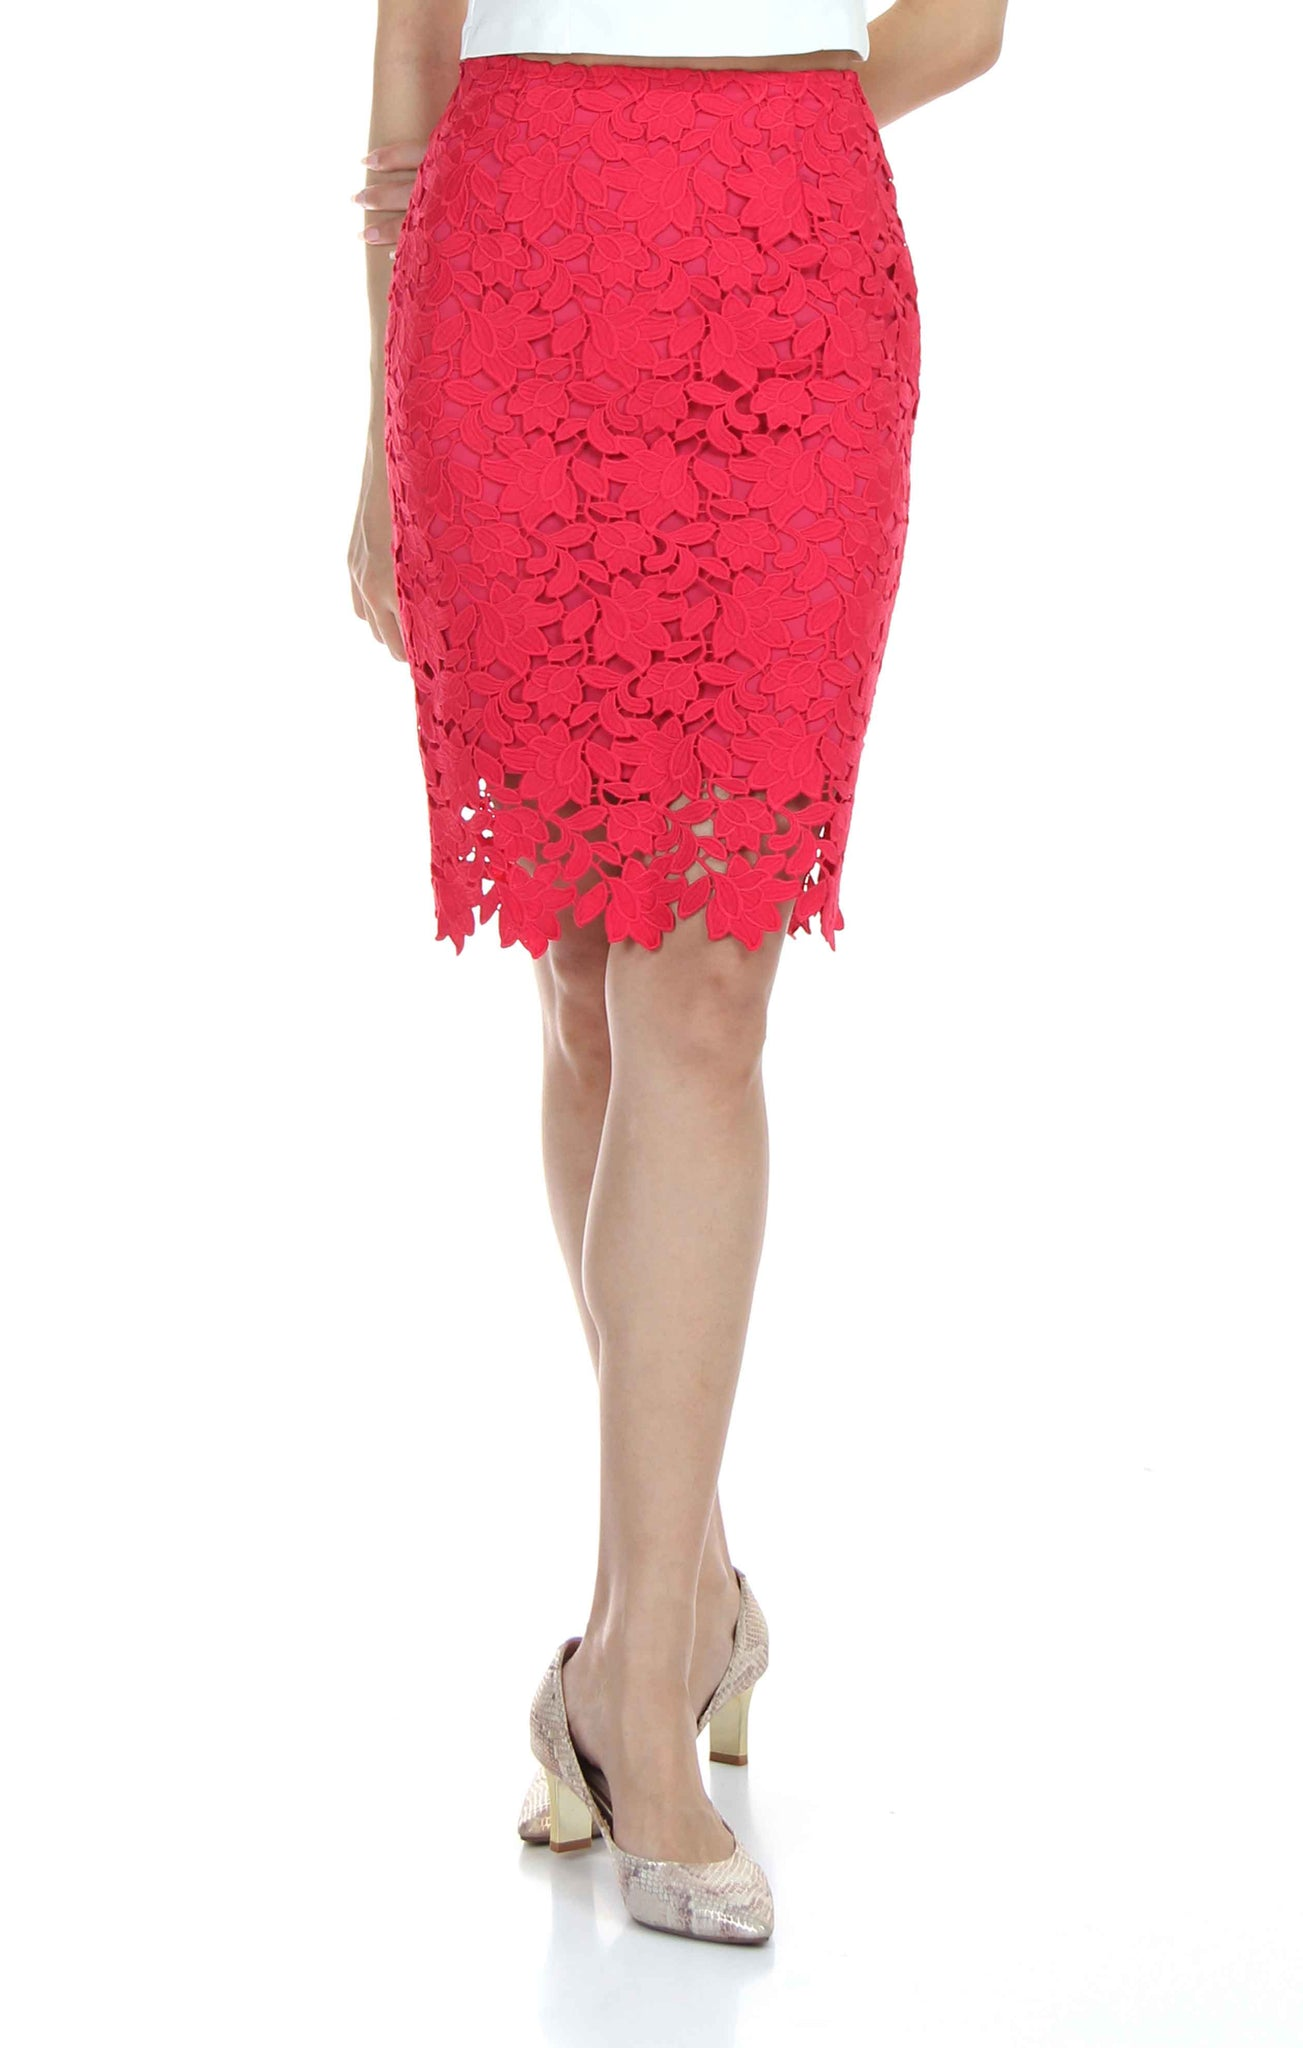 913524d9f0 A rose red high-waisted pencil skirt featuring a slim sillhoute cut and  side zip ...